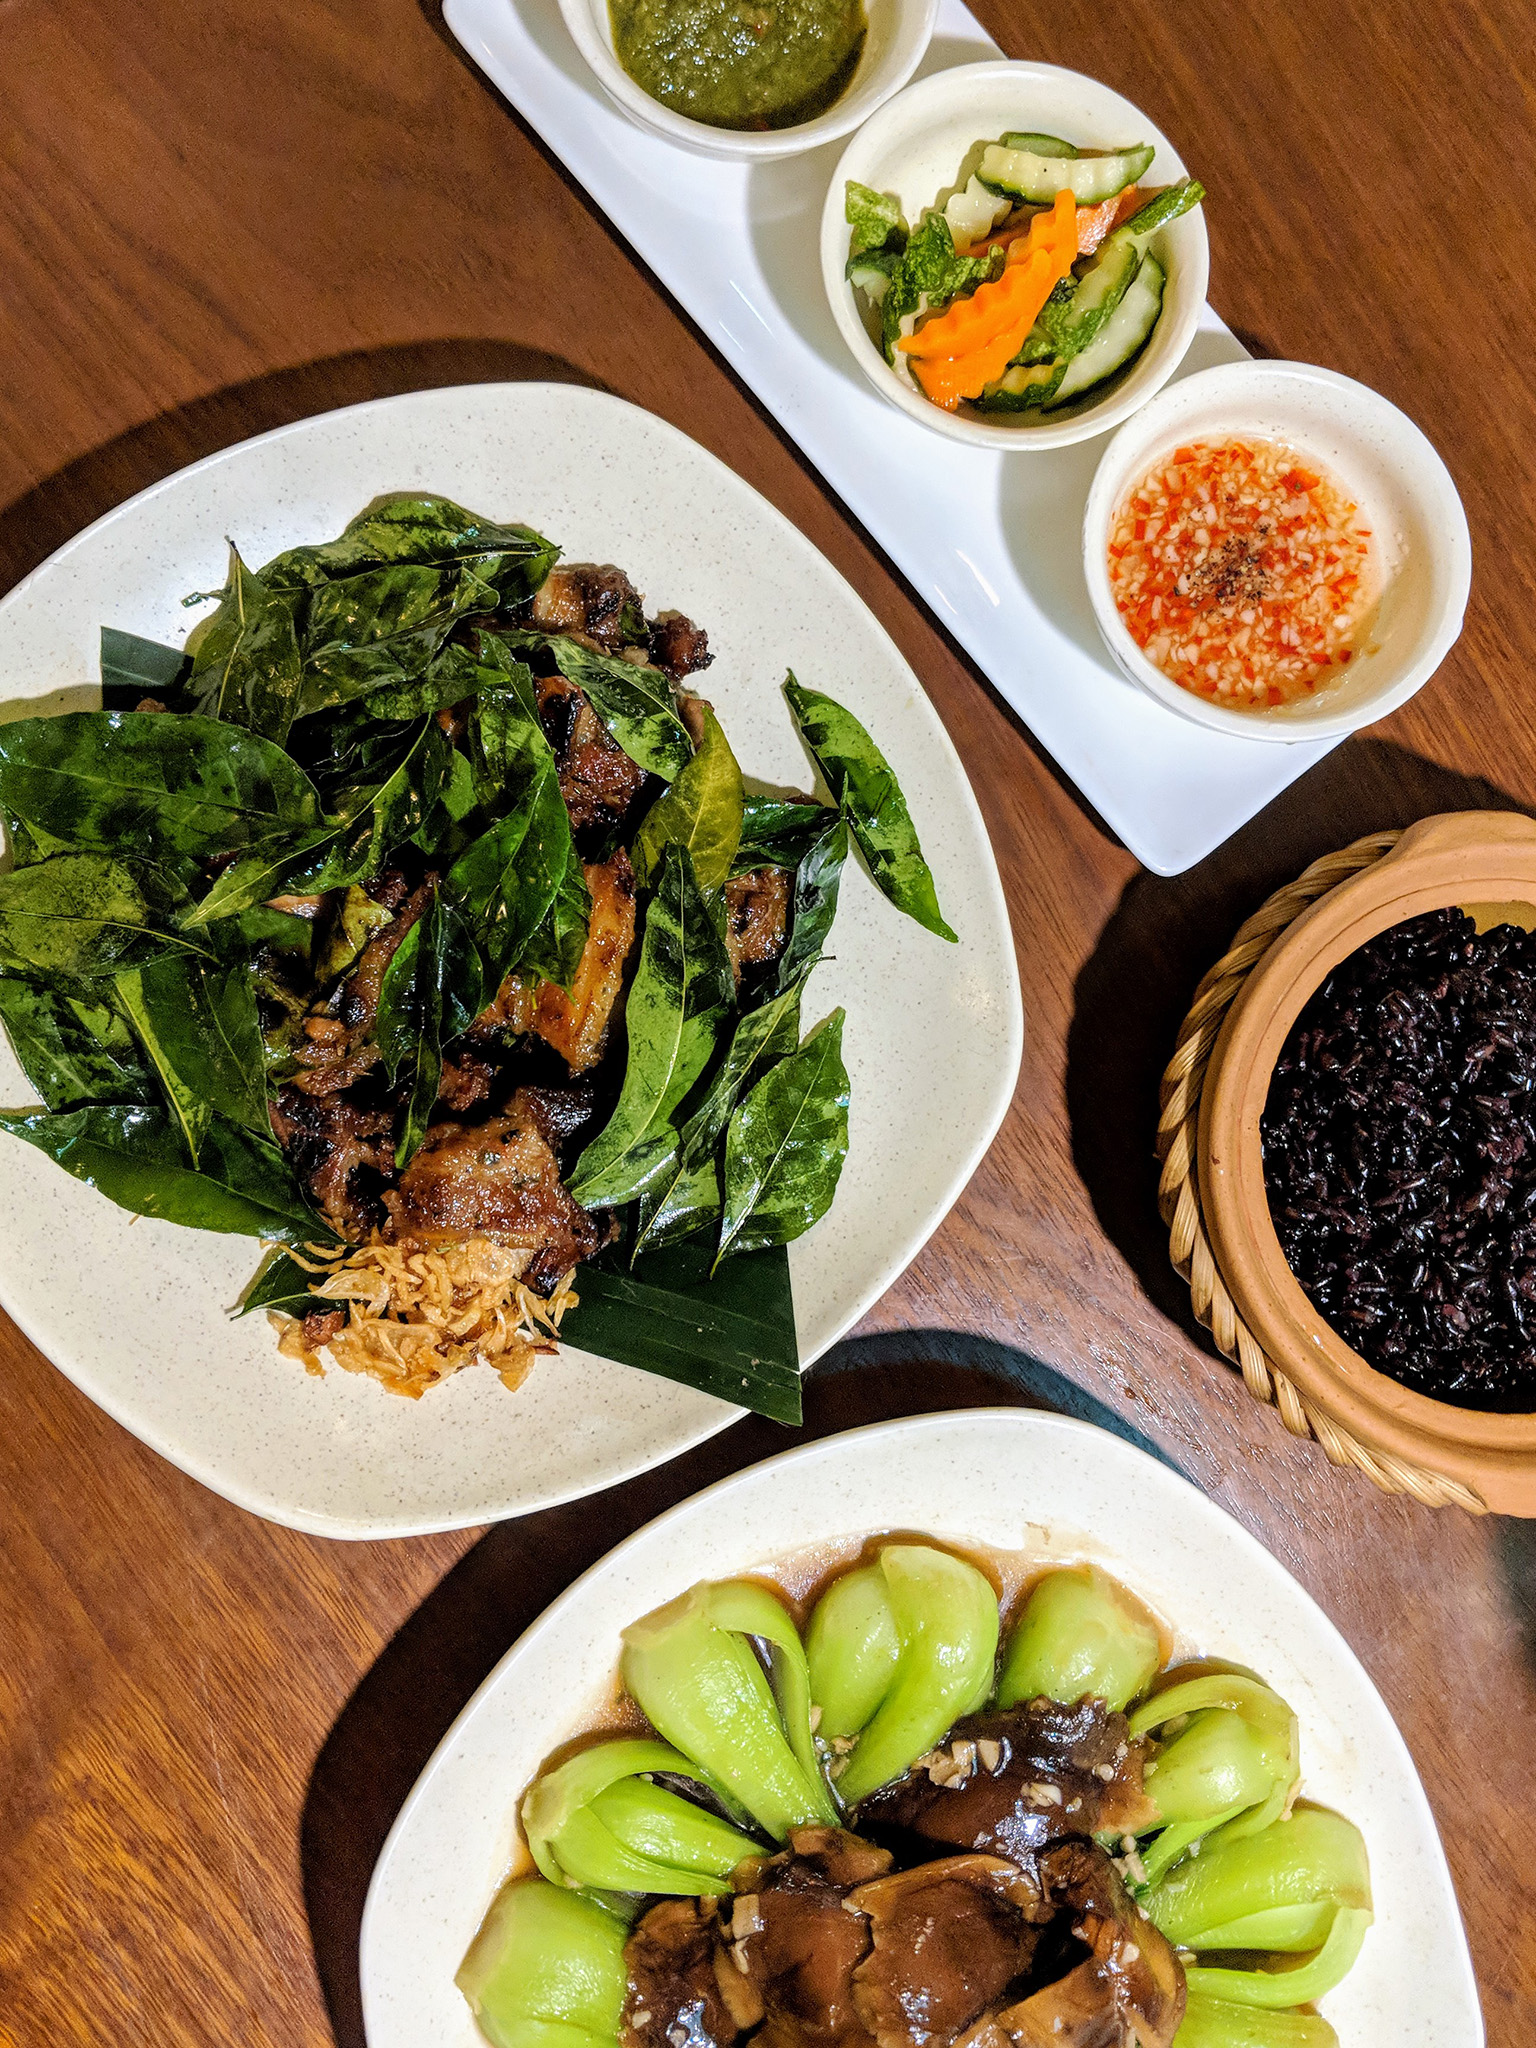 Splurge-worthy meal at Luk Lak. The lợn nướng was an extremely flavorful dish of tender pork belly grilled in kaffir lime leaves. Added black rice, bok choy and mushrooms to round it out.